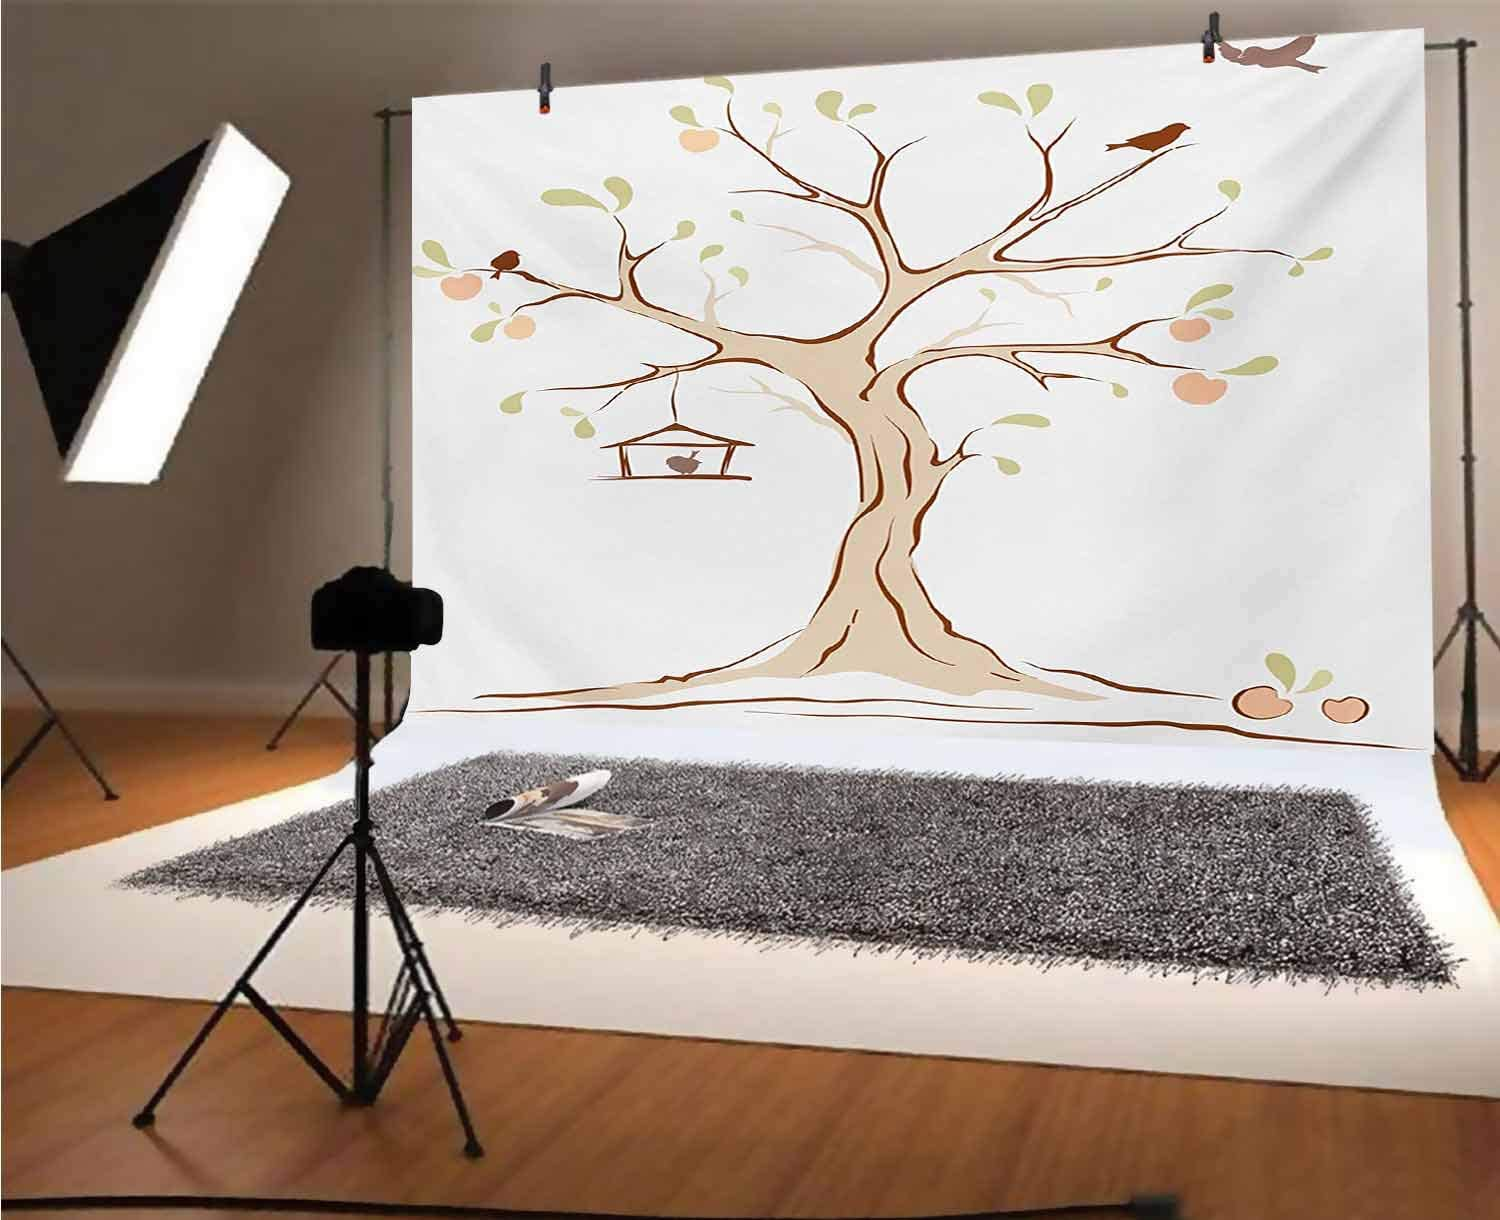 Tree of Life 20x10 FT Vinyl Photo Backdrops,Mature Apple Tree with Fying Birds and The Nest Fruit Family Nature Food Image Background for Selfie Birthday Party Pictures Photo Booth Shoot